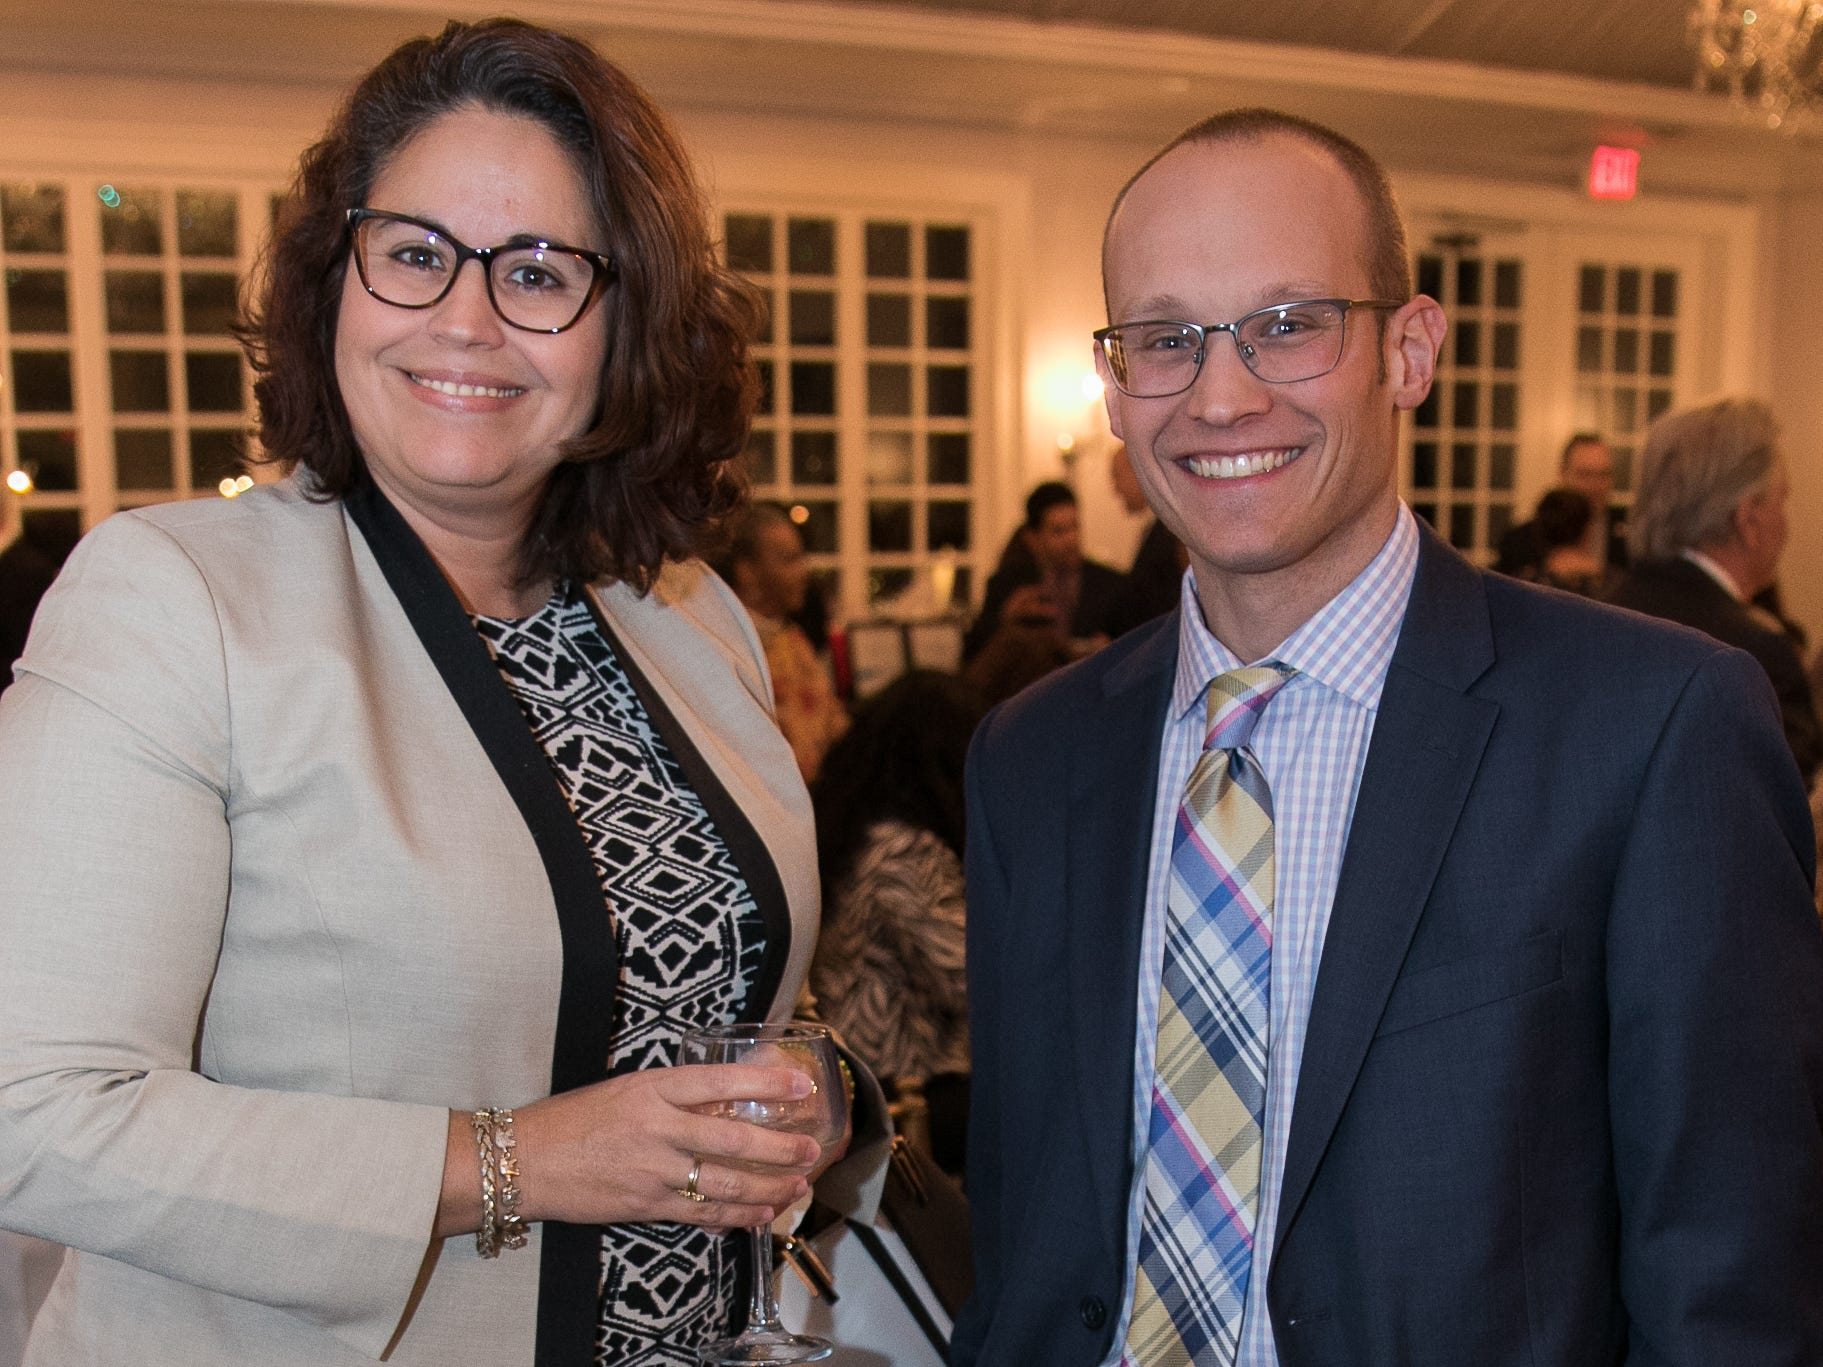 Mayda Gonzalez-Bosch, Larry Hlavenka. The Bergen Volunteer Center celebrated its 10th anniversary of the Bergen LEADS program at The Hearts of Gold Dinner and Auction at the Stony Hill Inn in Hackensack. 11/08/2018